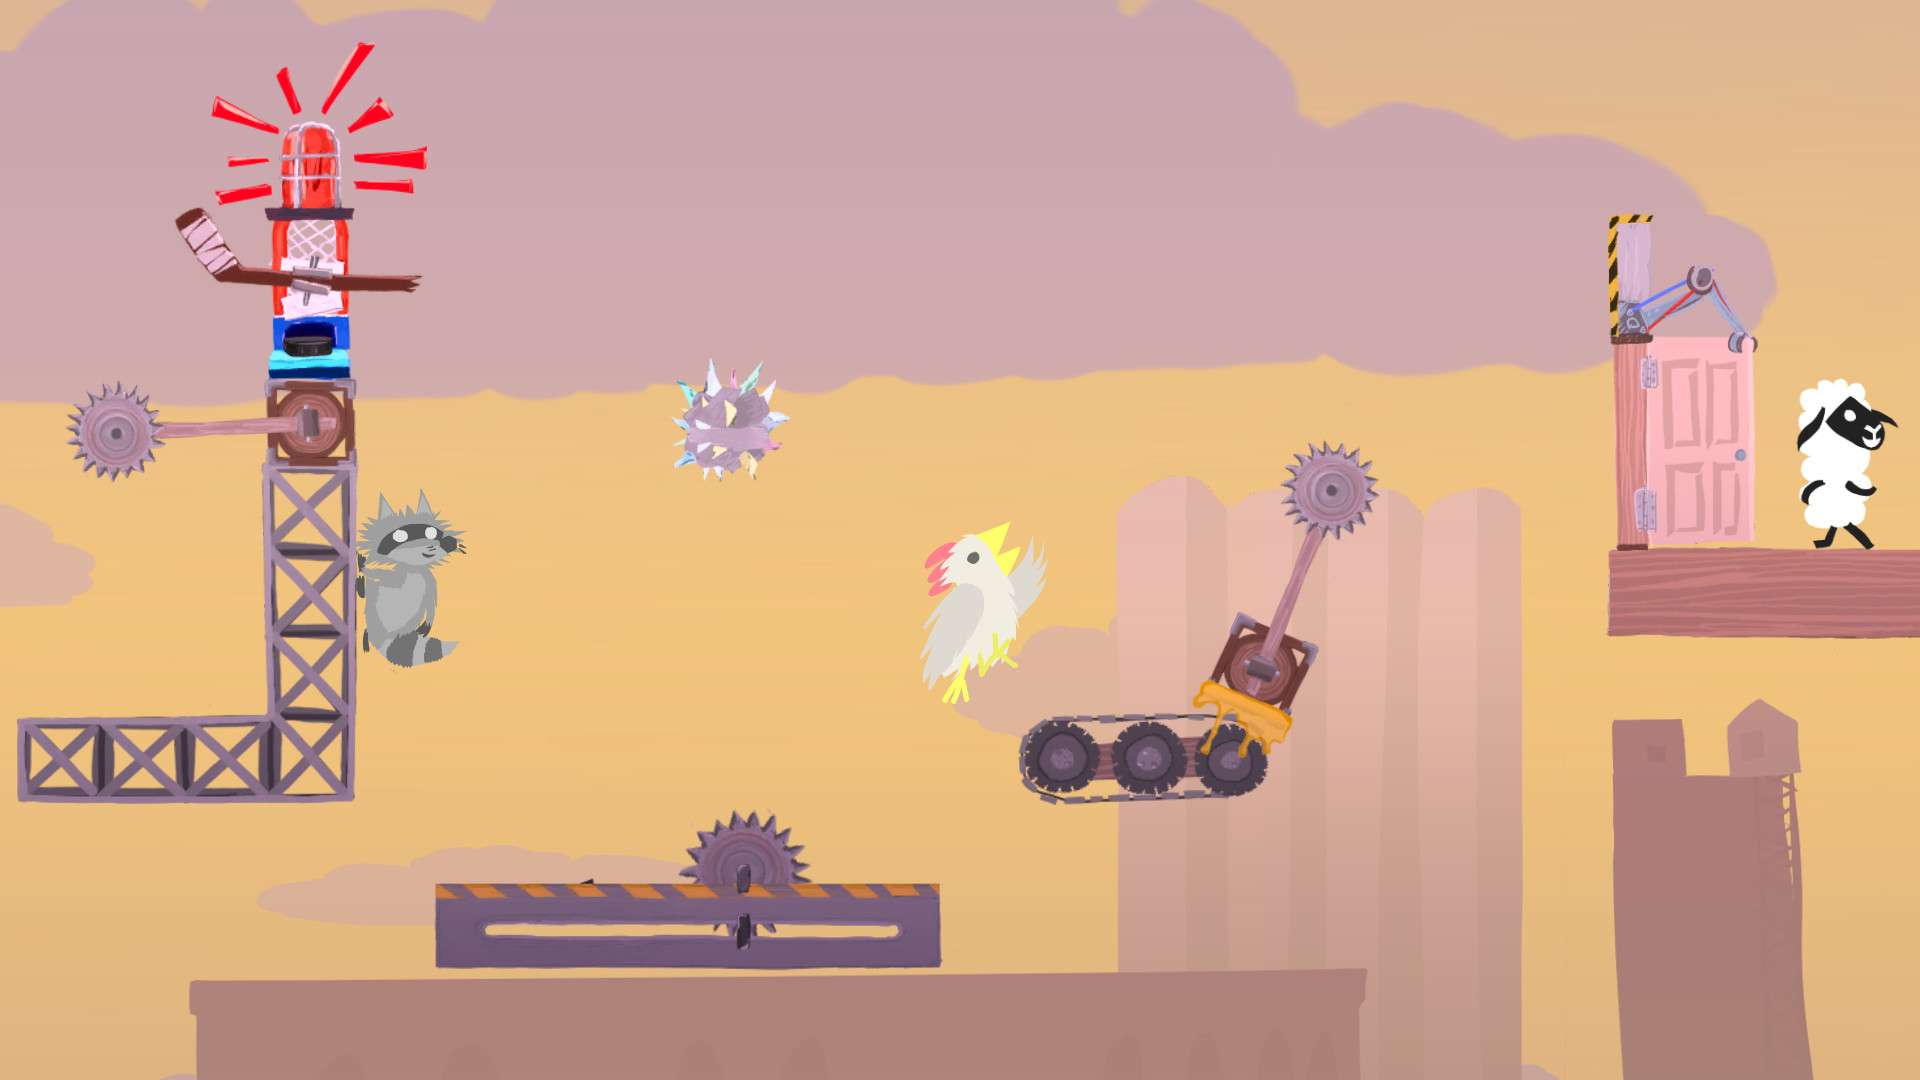 Ultimate Chicken Horse #3